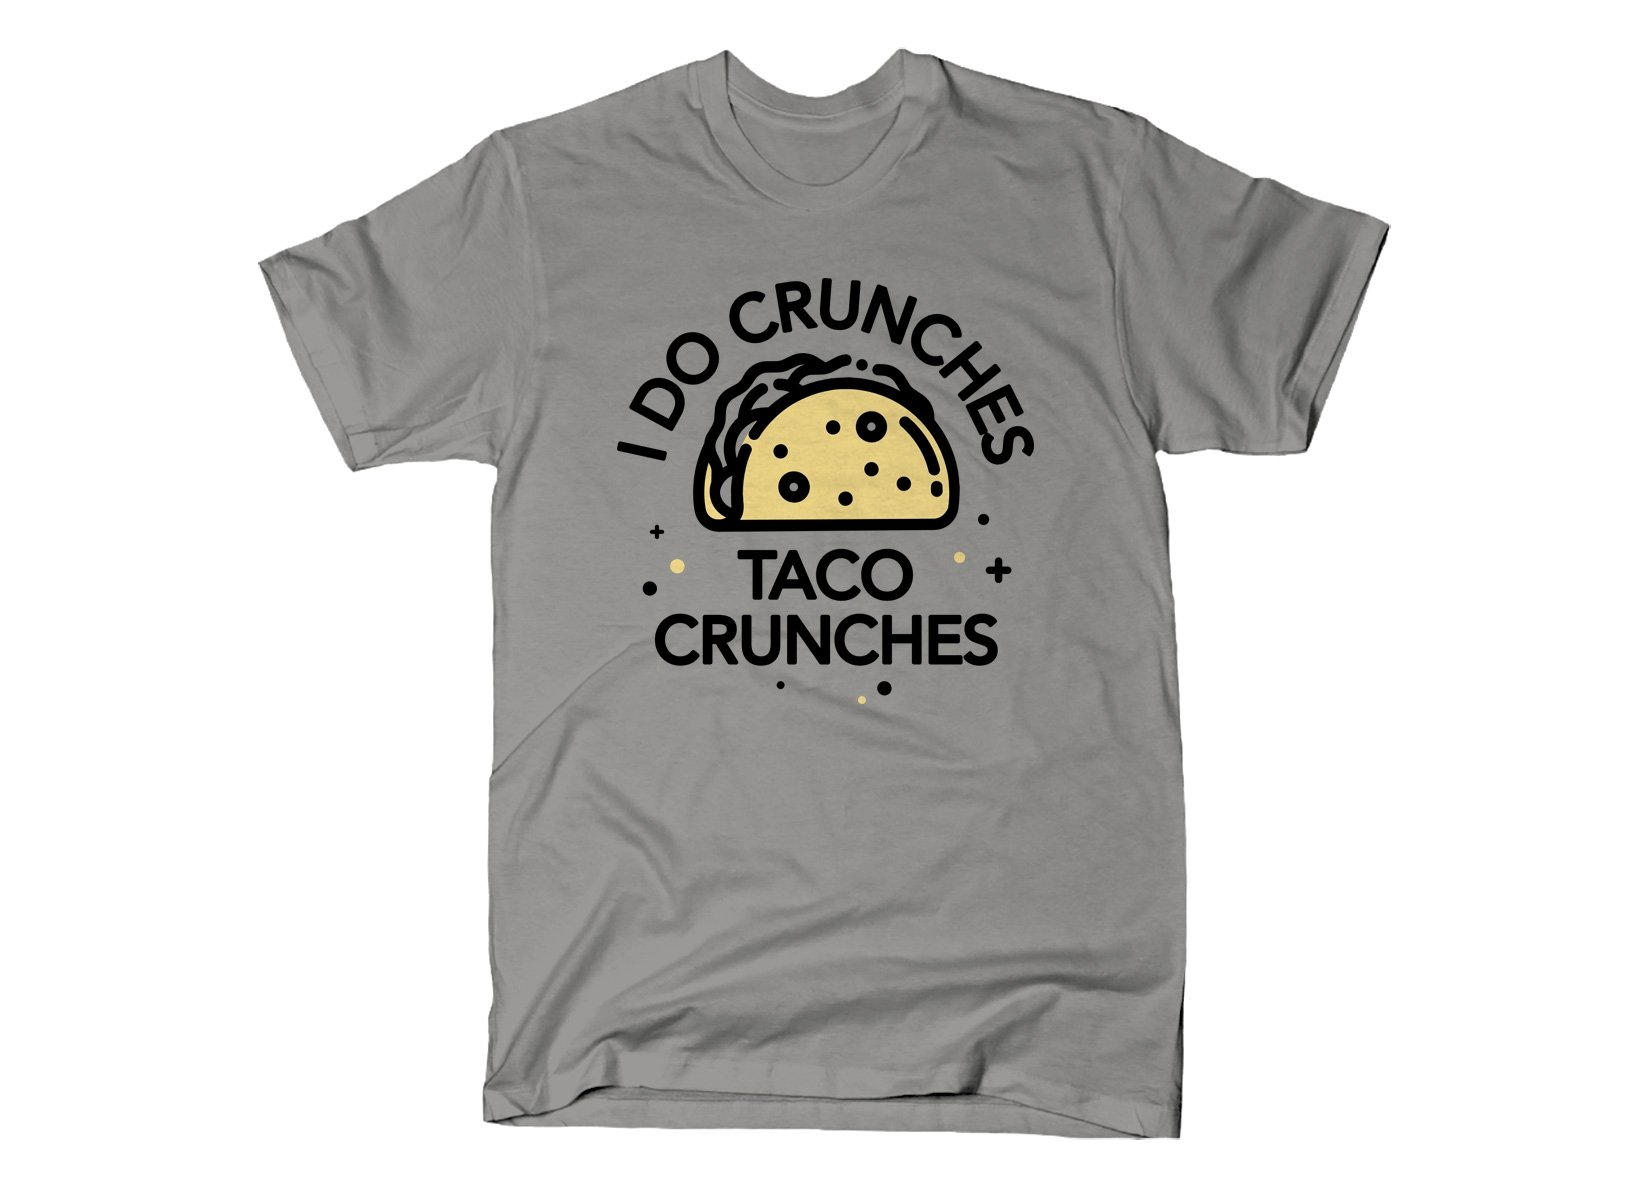 I Do Crunches Taco Crunches on Mens T-Shirt